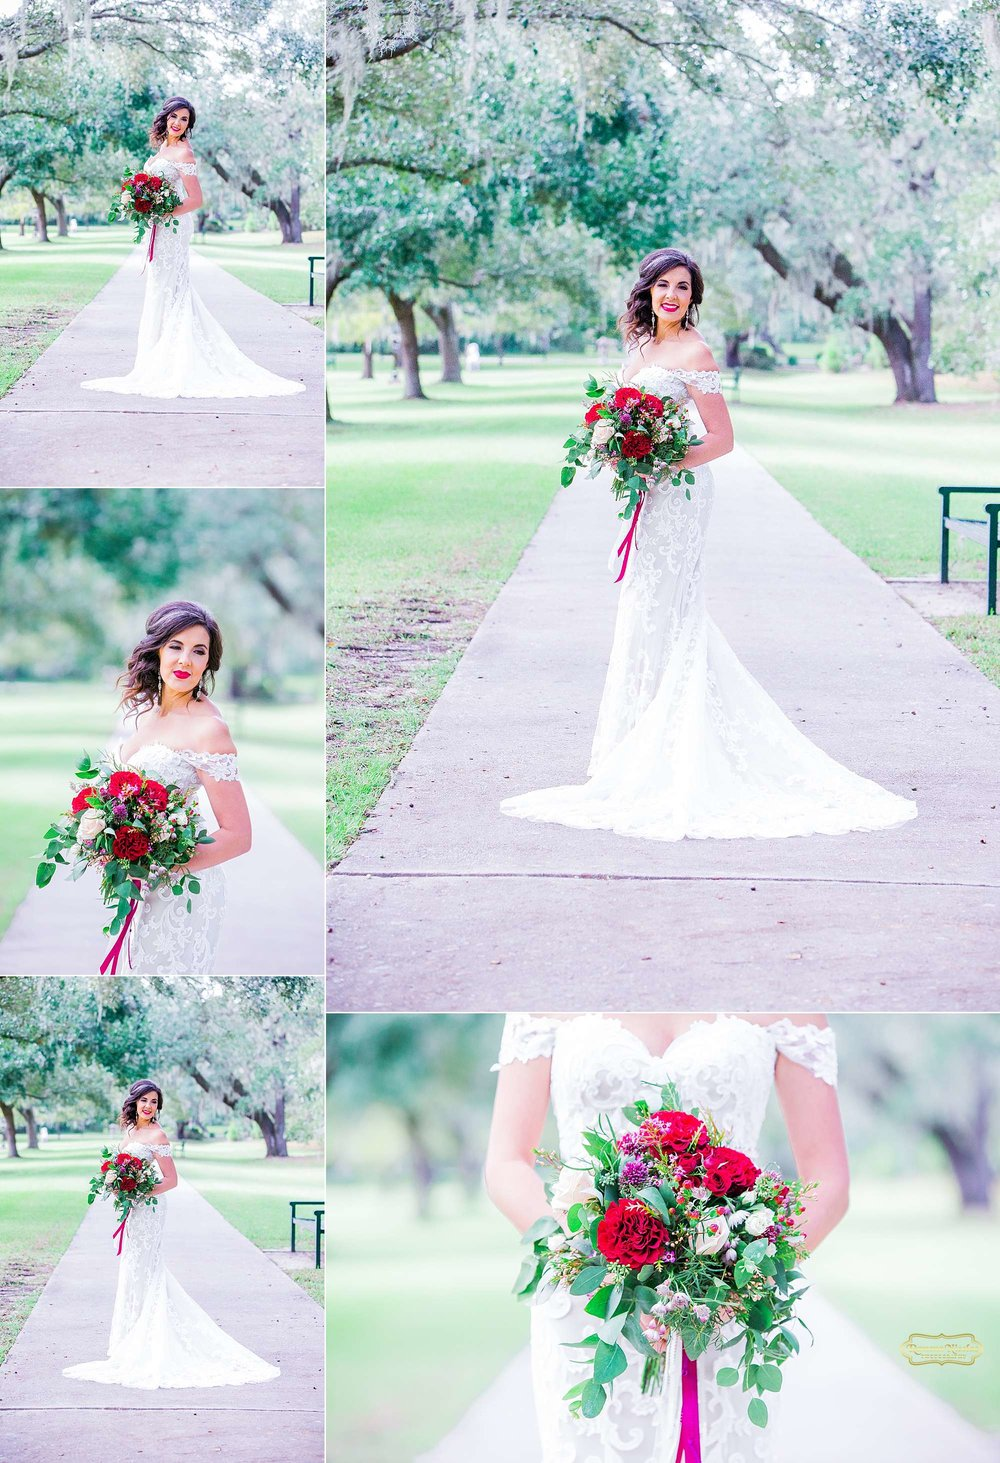 happy bride with red wedding bouquet at brookgreen gardens for bridal session with ramona nicolae photography-8.jpg